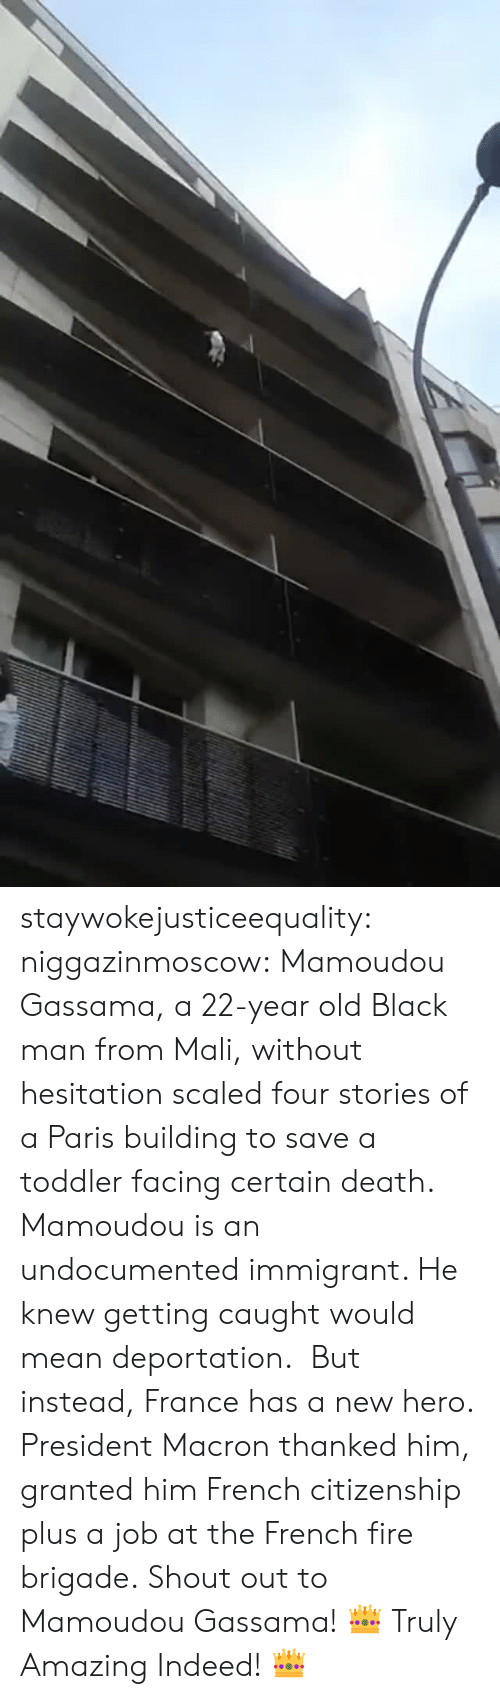 without hesitation: staywokejusticeequality:  niggazinmoscow:  Mamoudou Gassama, a 22-year old Black man from Mali, without hesitation   scaled four stories of a Paris building to save a toddler facing certain death. Mamoudou is an undocumented immigrant. He knew getting caught would mean deportation. But instead, France has a new hero. President Macron thanked him, granted him French citizenship plus a job at the French fire brigade. Shout out to Mamoudou Gassama!    👑 Truly Amazing Indeed! 👑